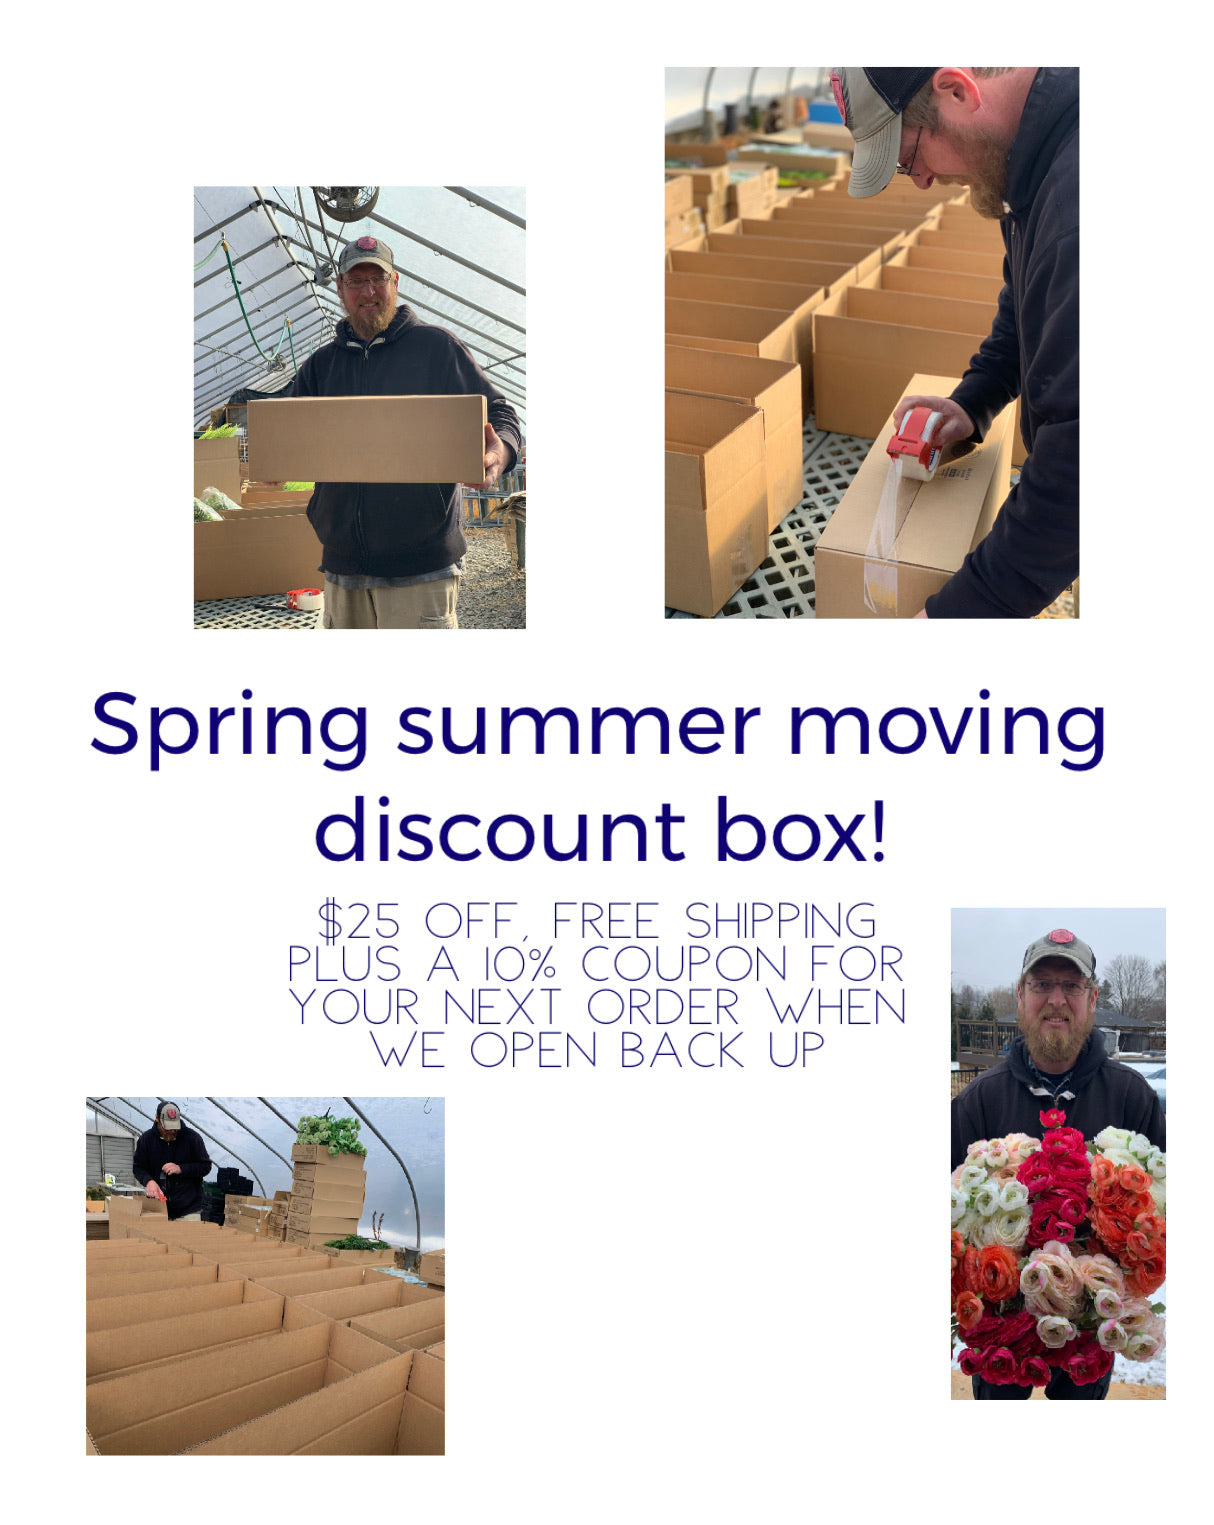 Discount moving box $25 off PLUS FREE SHIPPING PLUS